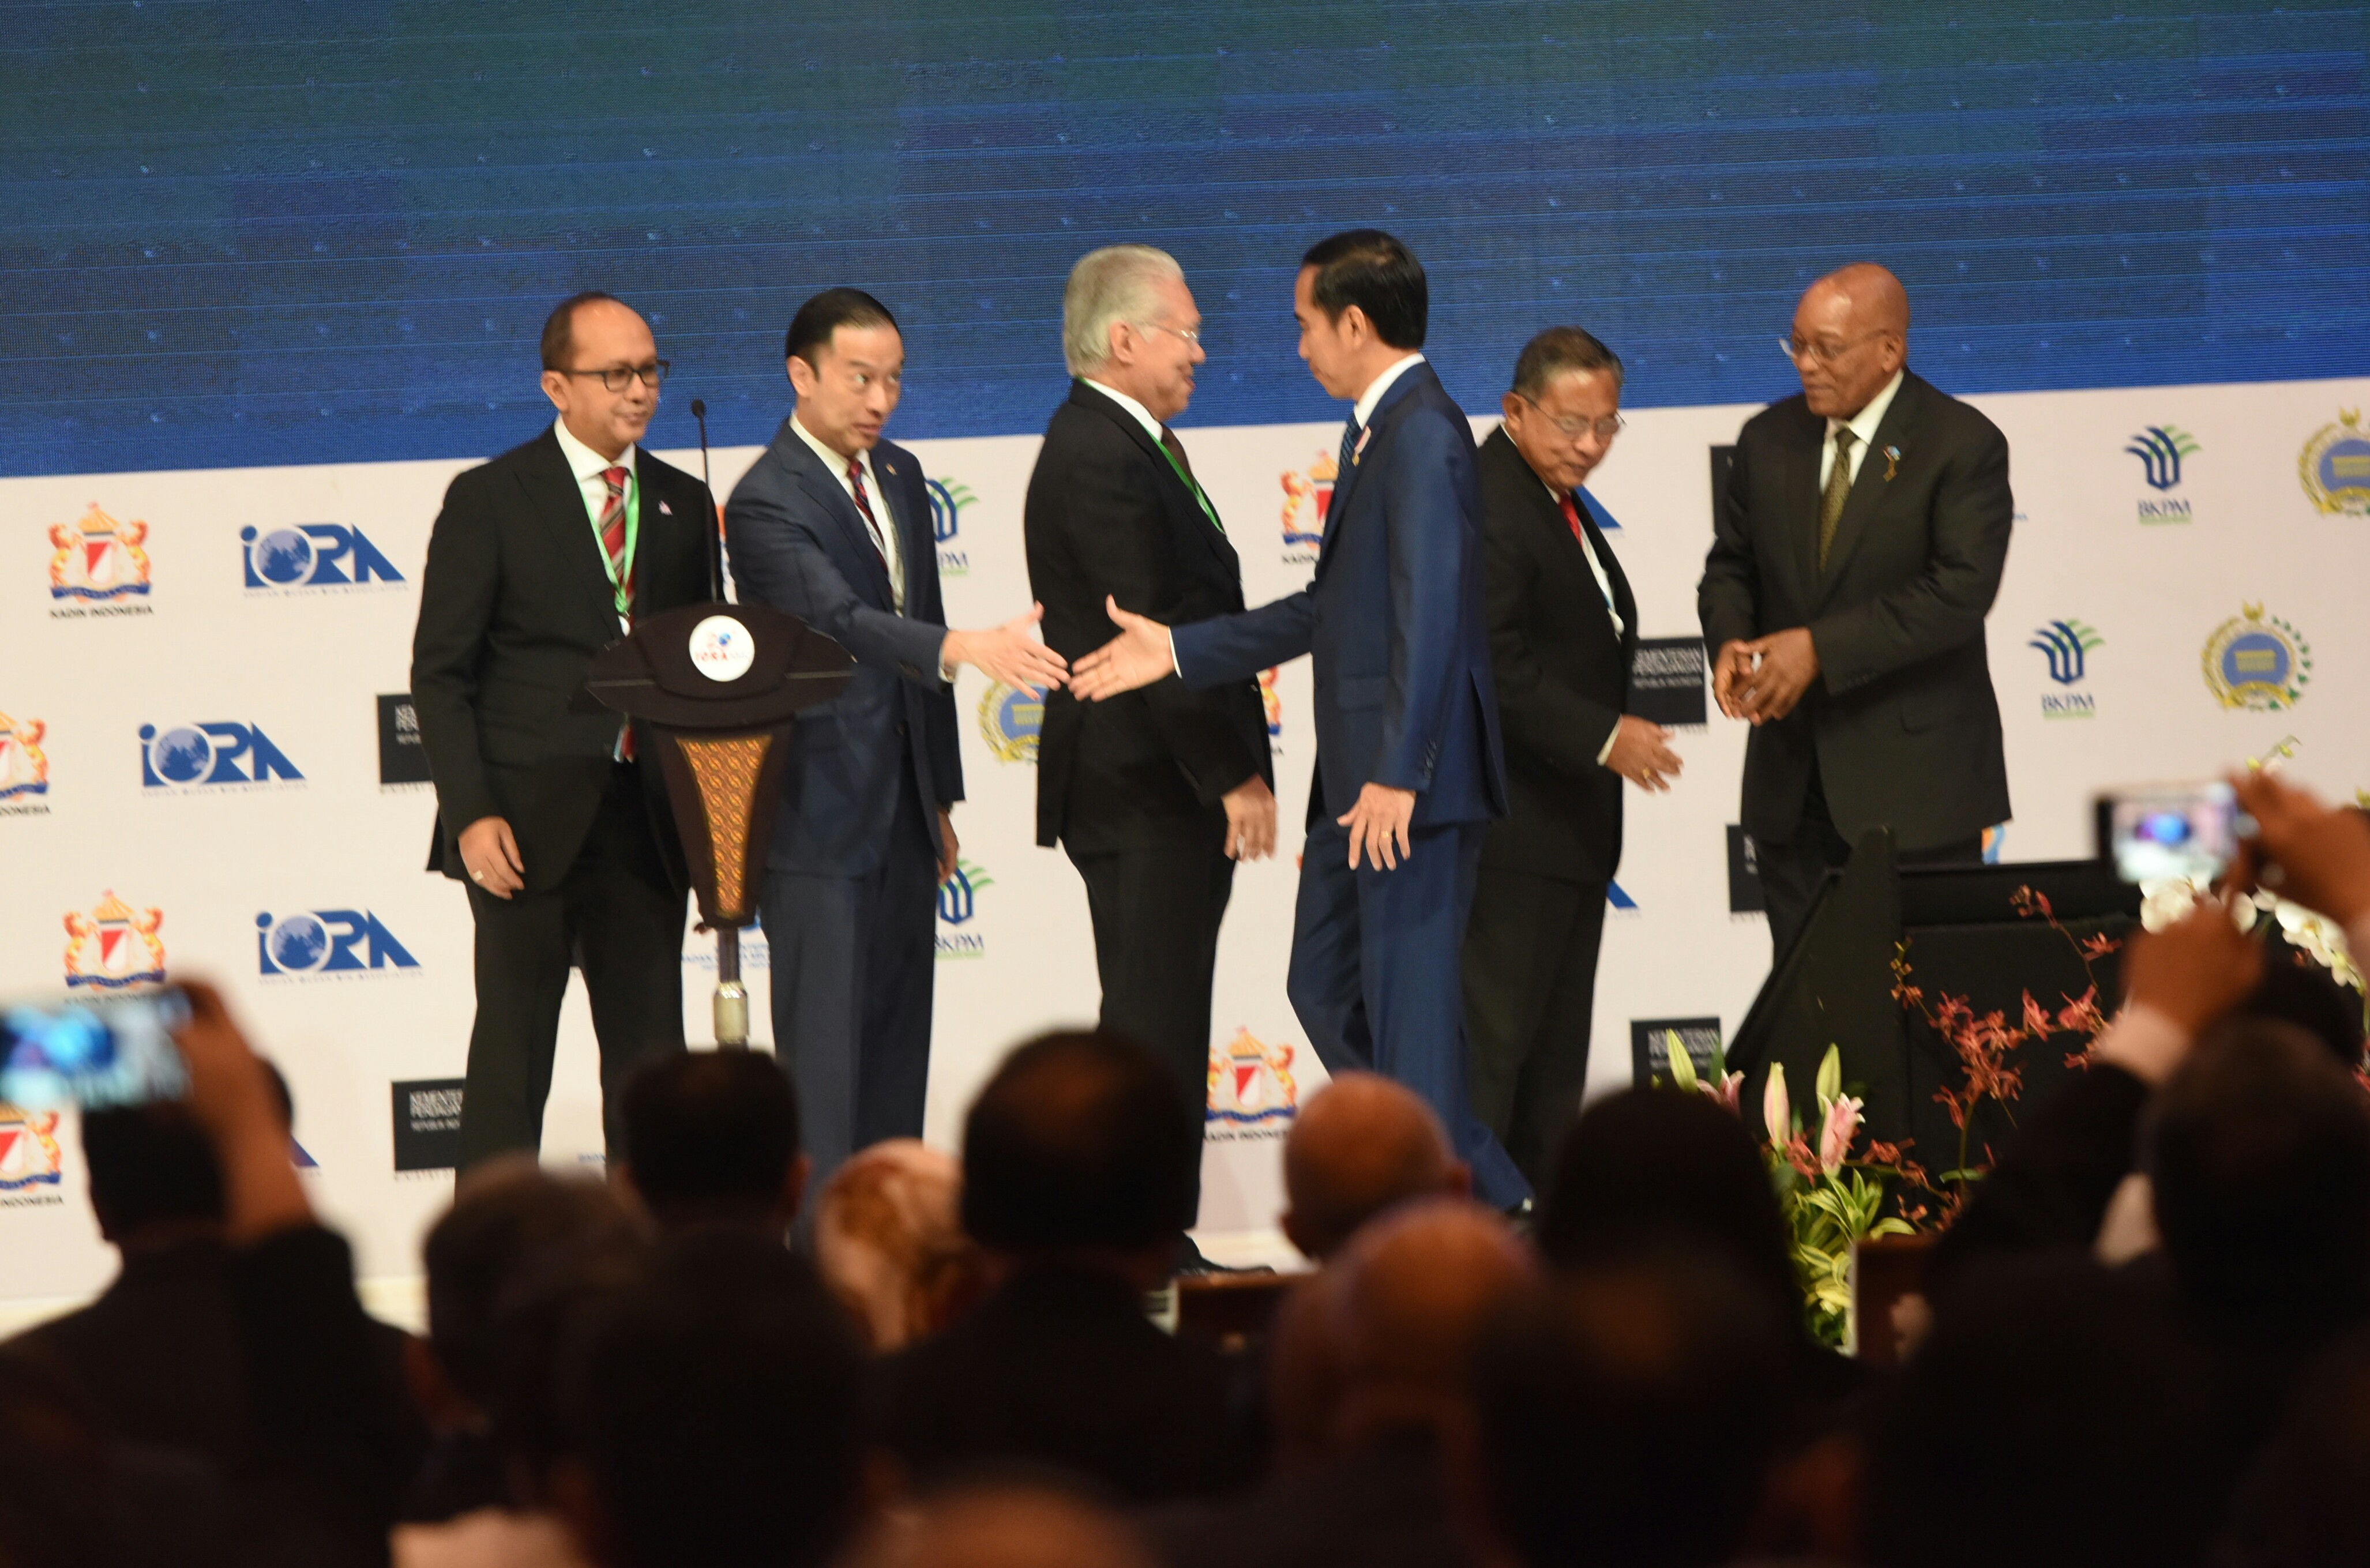 President Jokowi shakes hands with a number of guests after delivering his remarks at the IORA Business Summit held at JCC Jakarta, Monday (6/3) (Photo by: Rahmat/Public Relations Division)